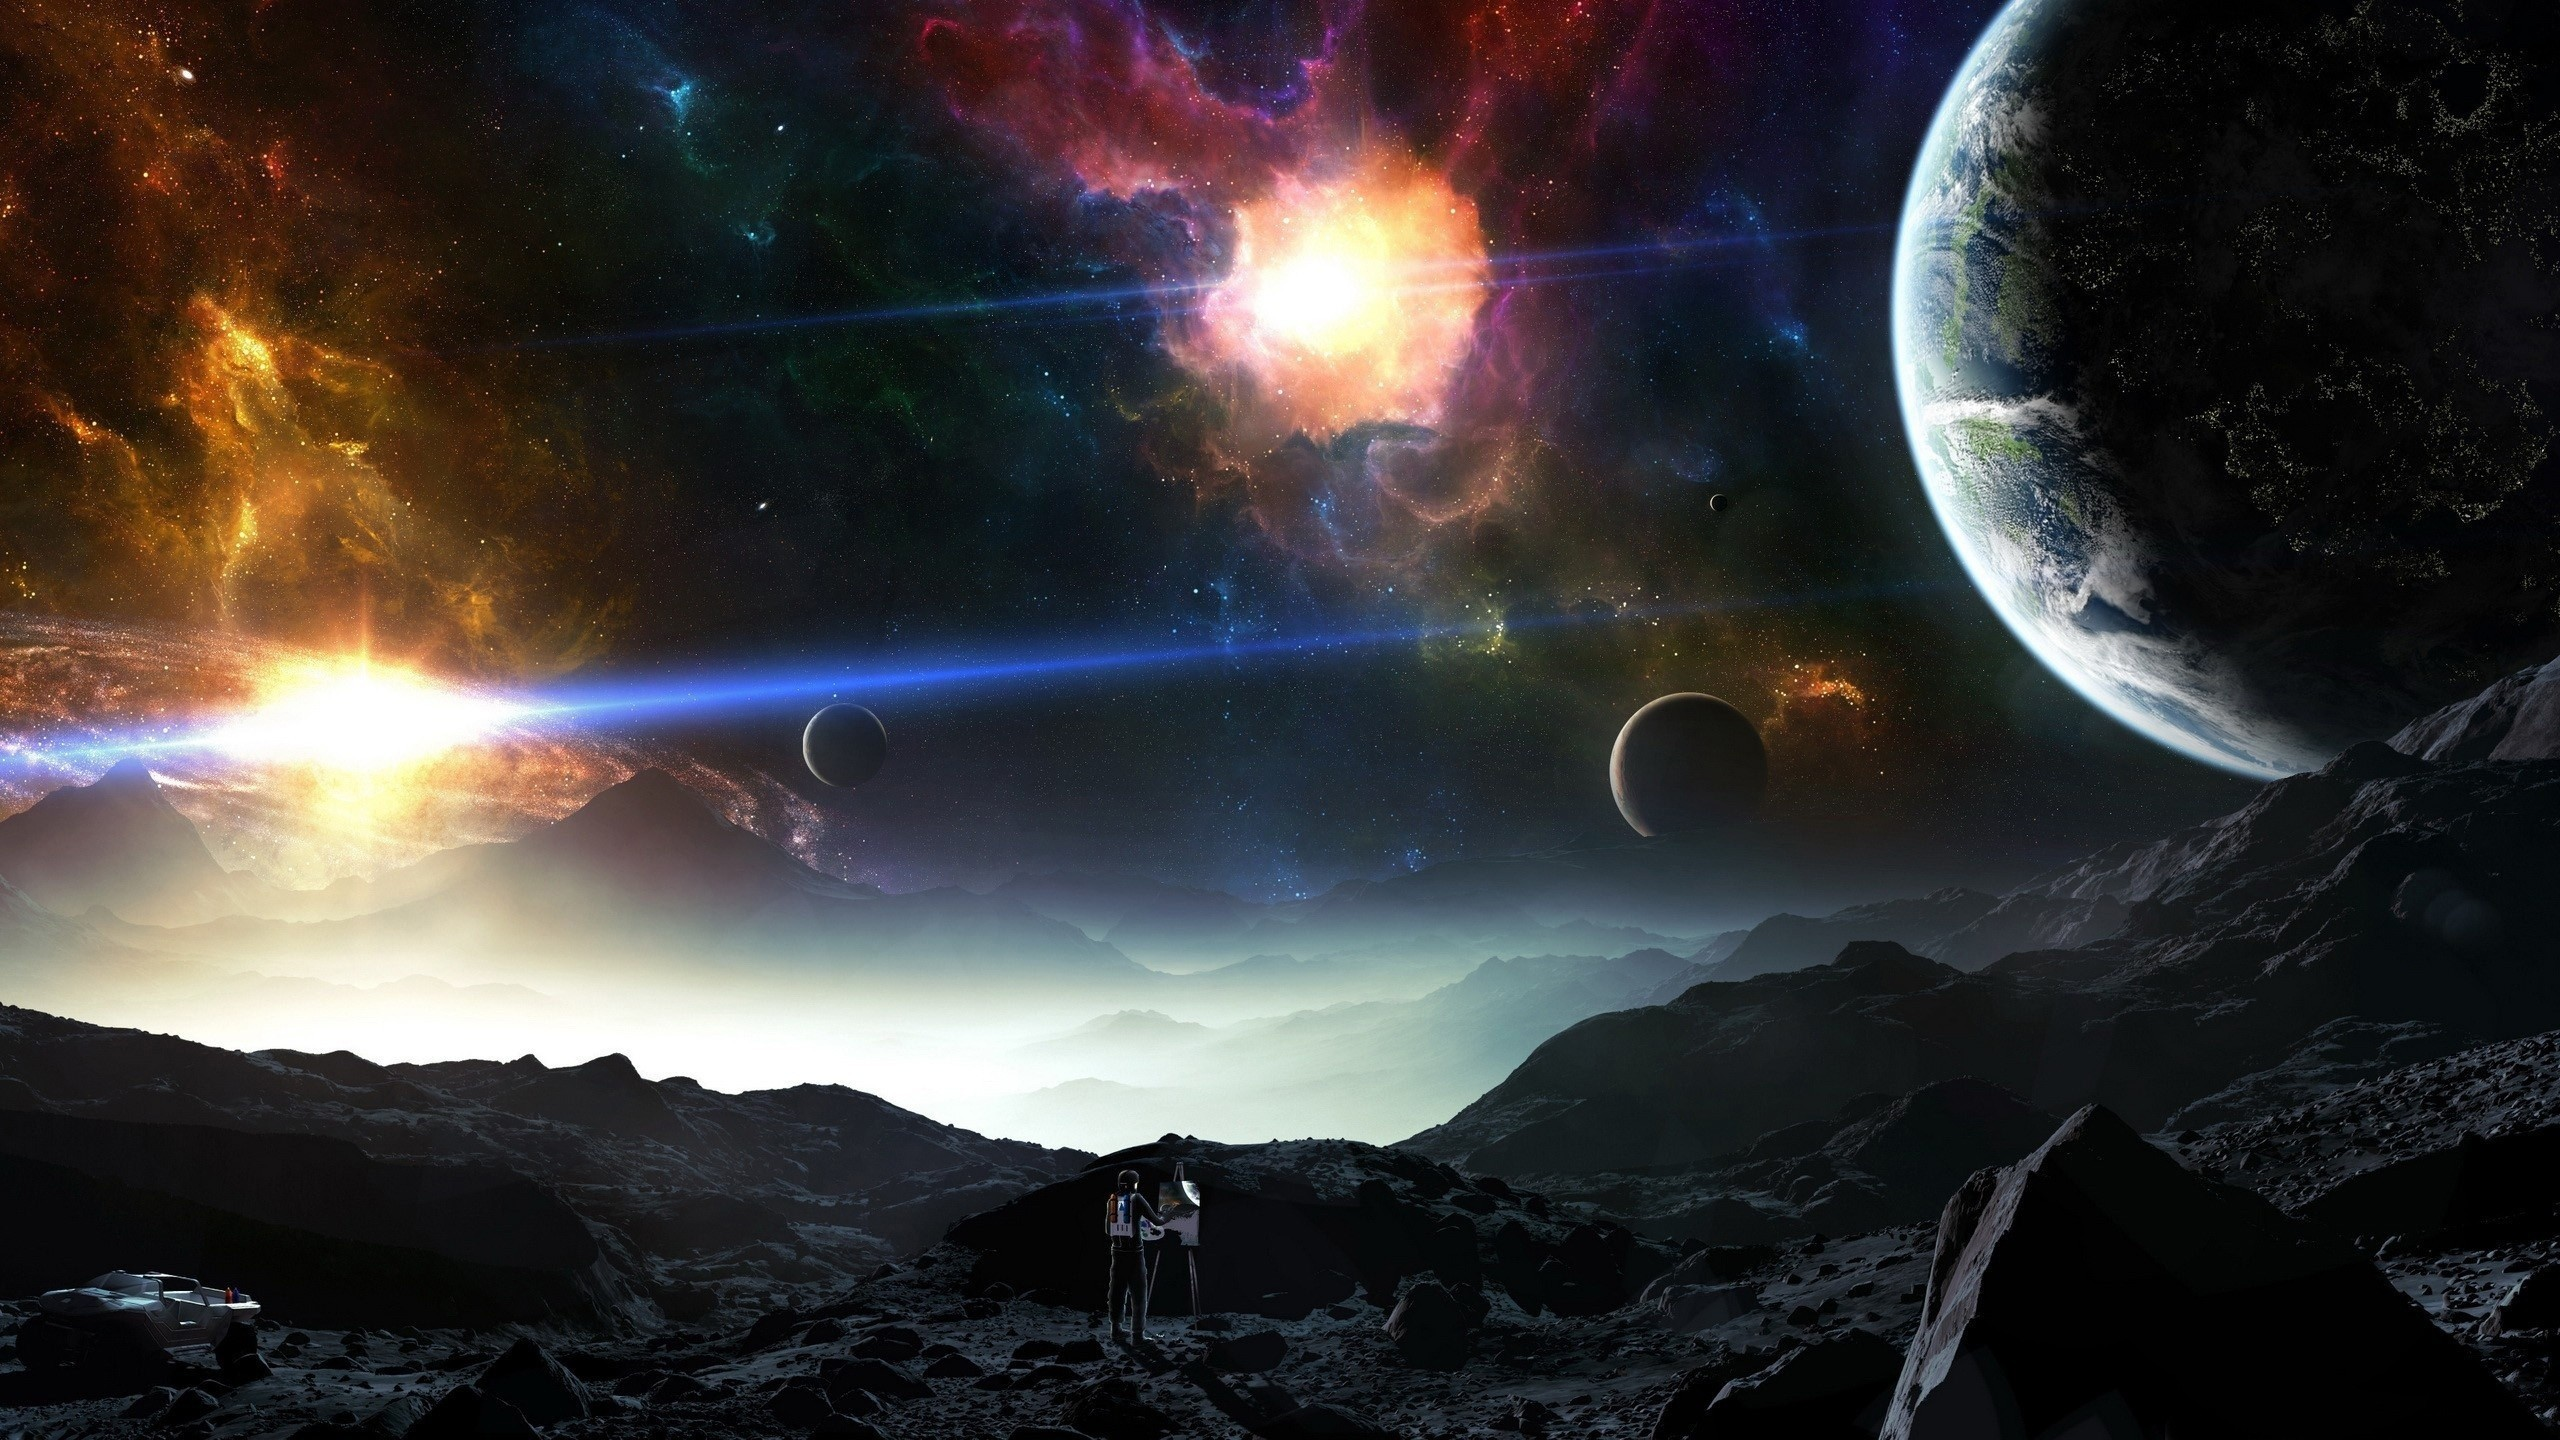 painting the universe hd wallpaper background image 2560x1440